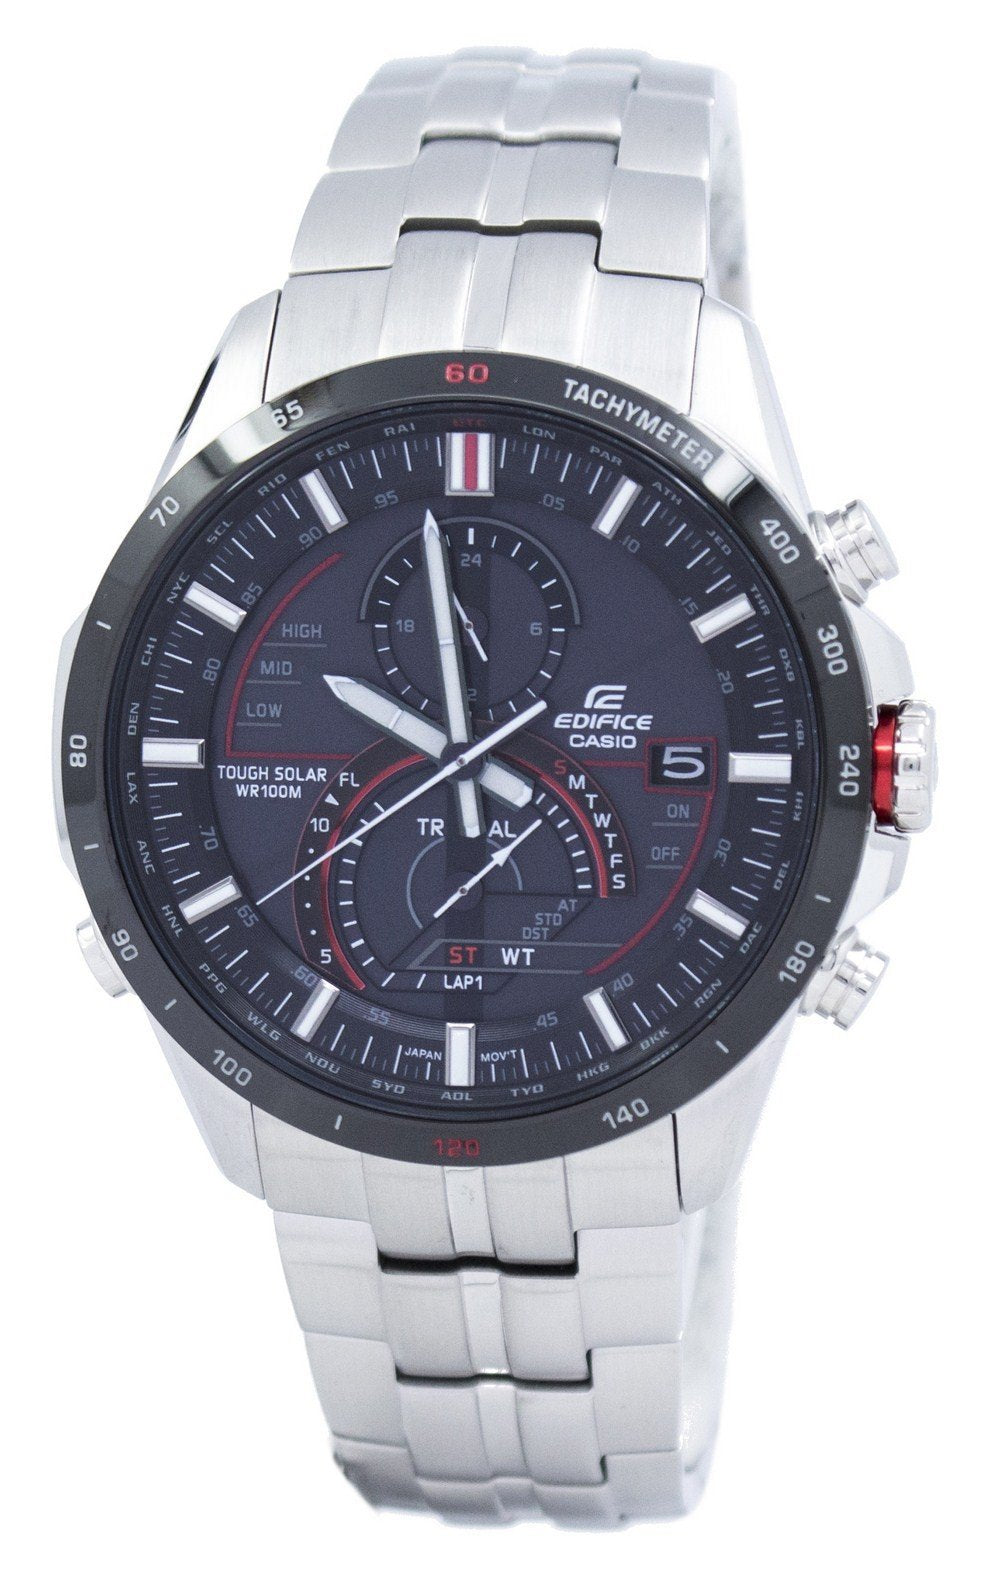 Casio Edifice Active Racing Line EQS-A500DB-1AV EQSA500DB-1AV Men's Watch